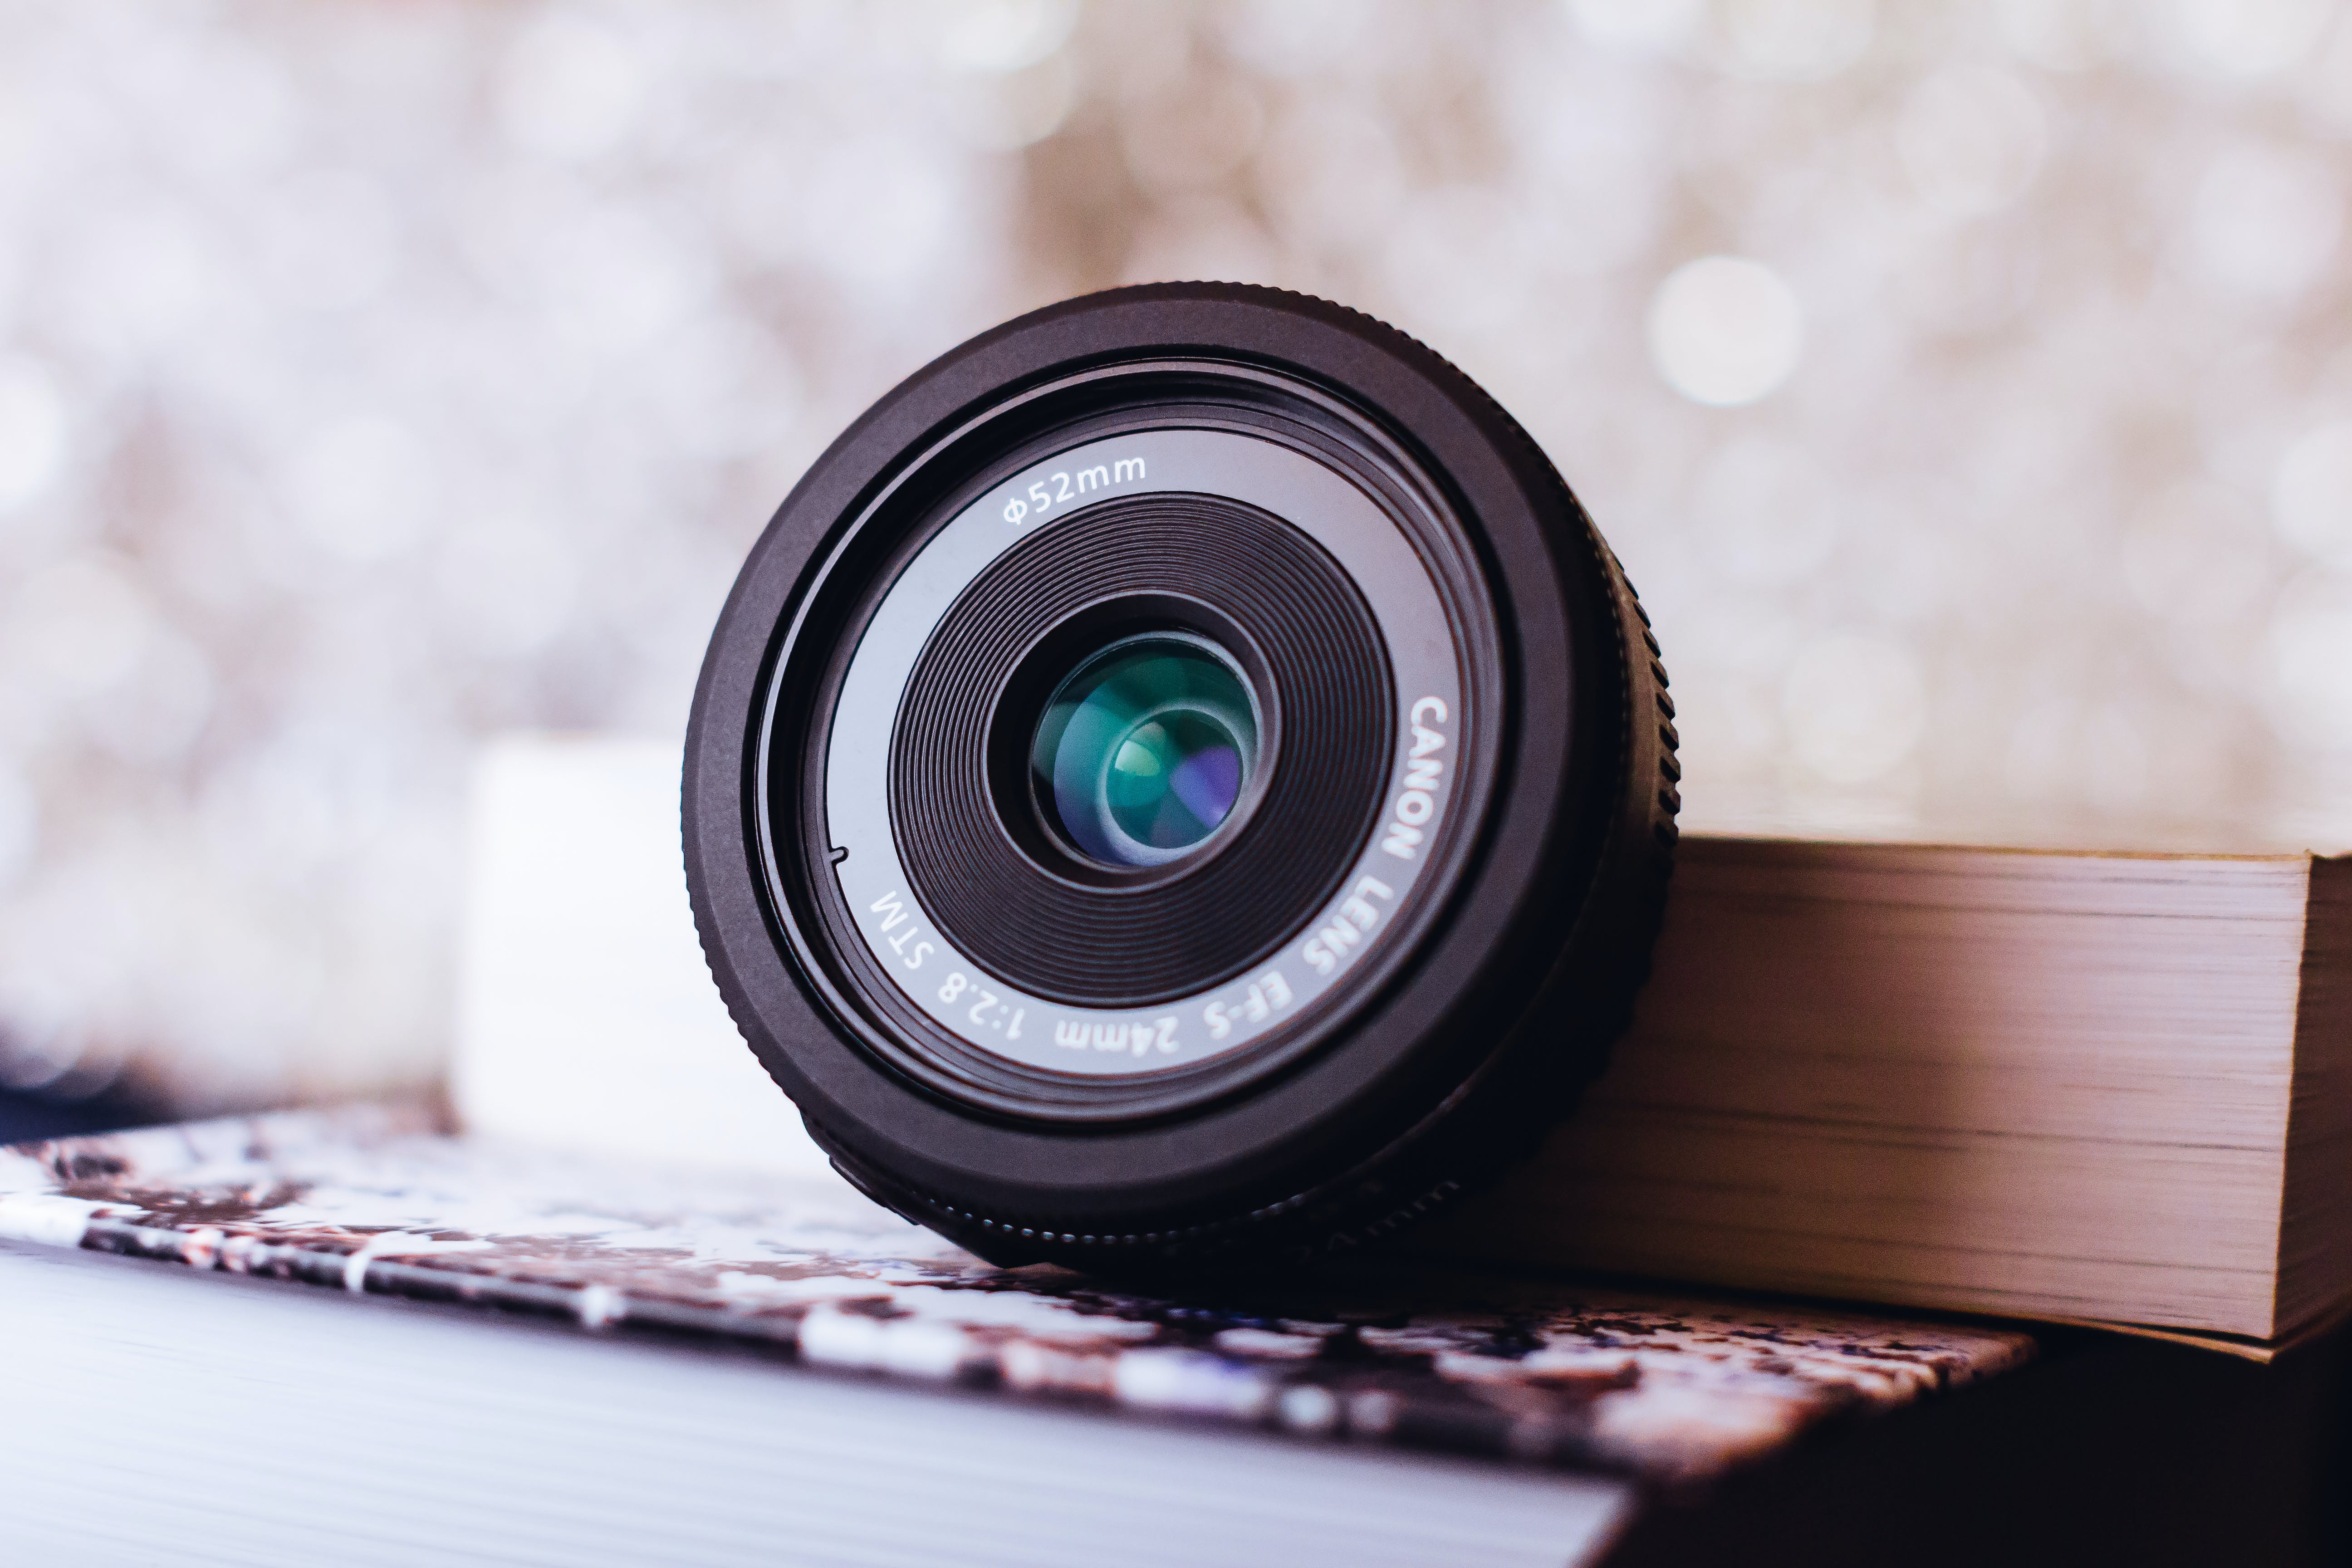 Black Canon Zoom Lens Leaning on Book